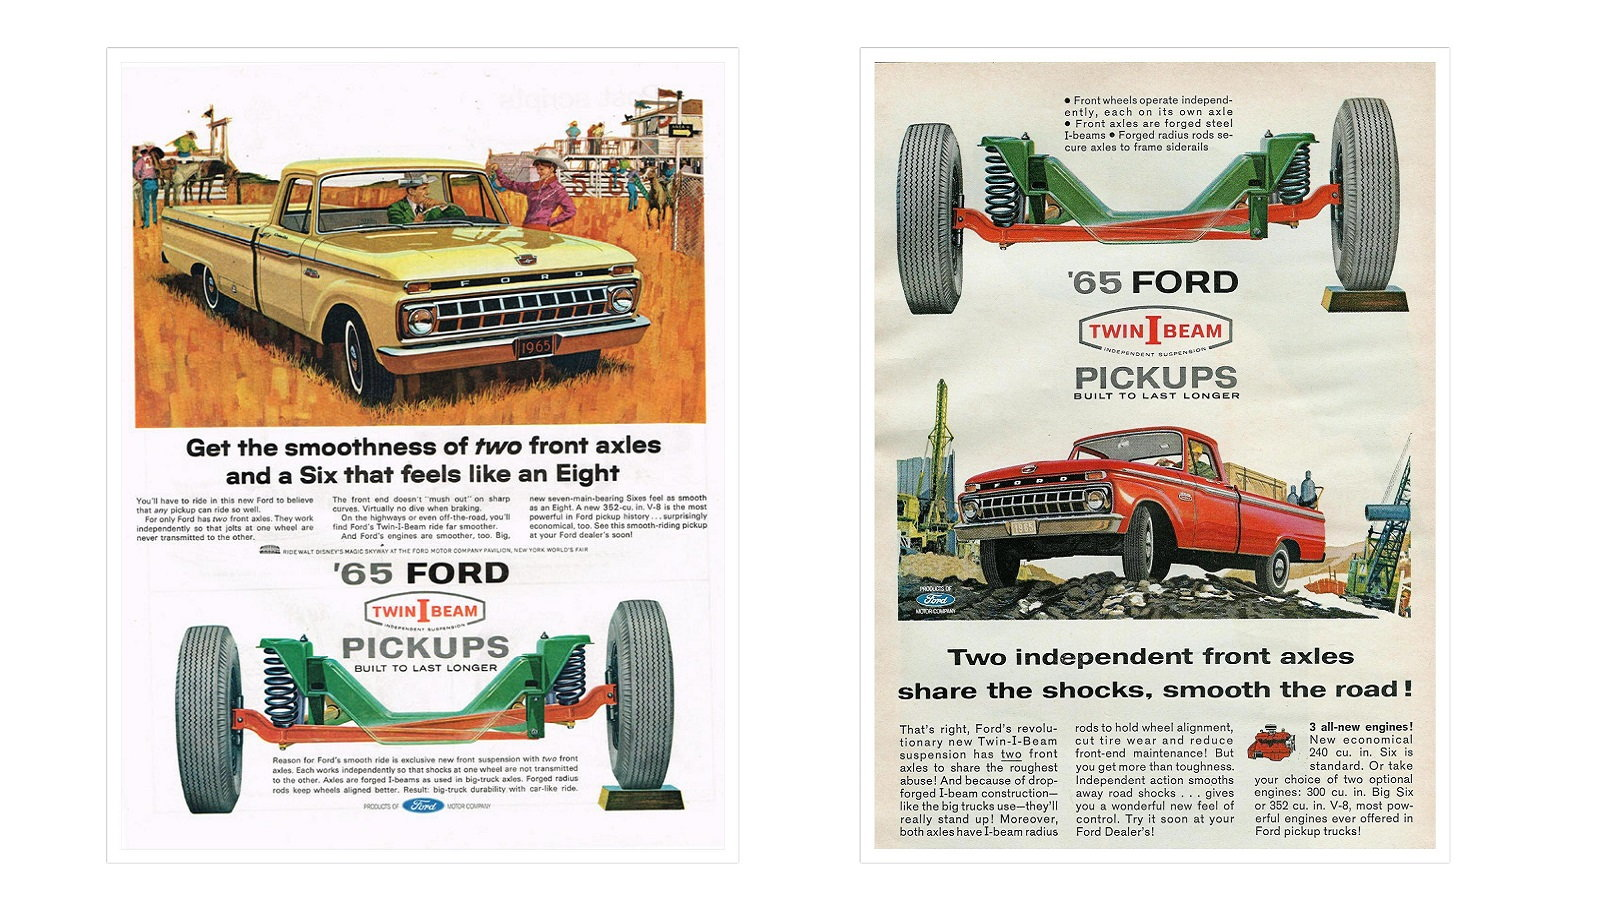 Ford offered the first independent front suspension on a domestic pickup